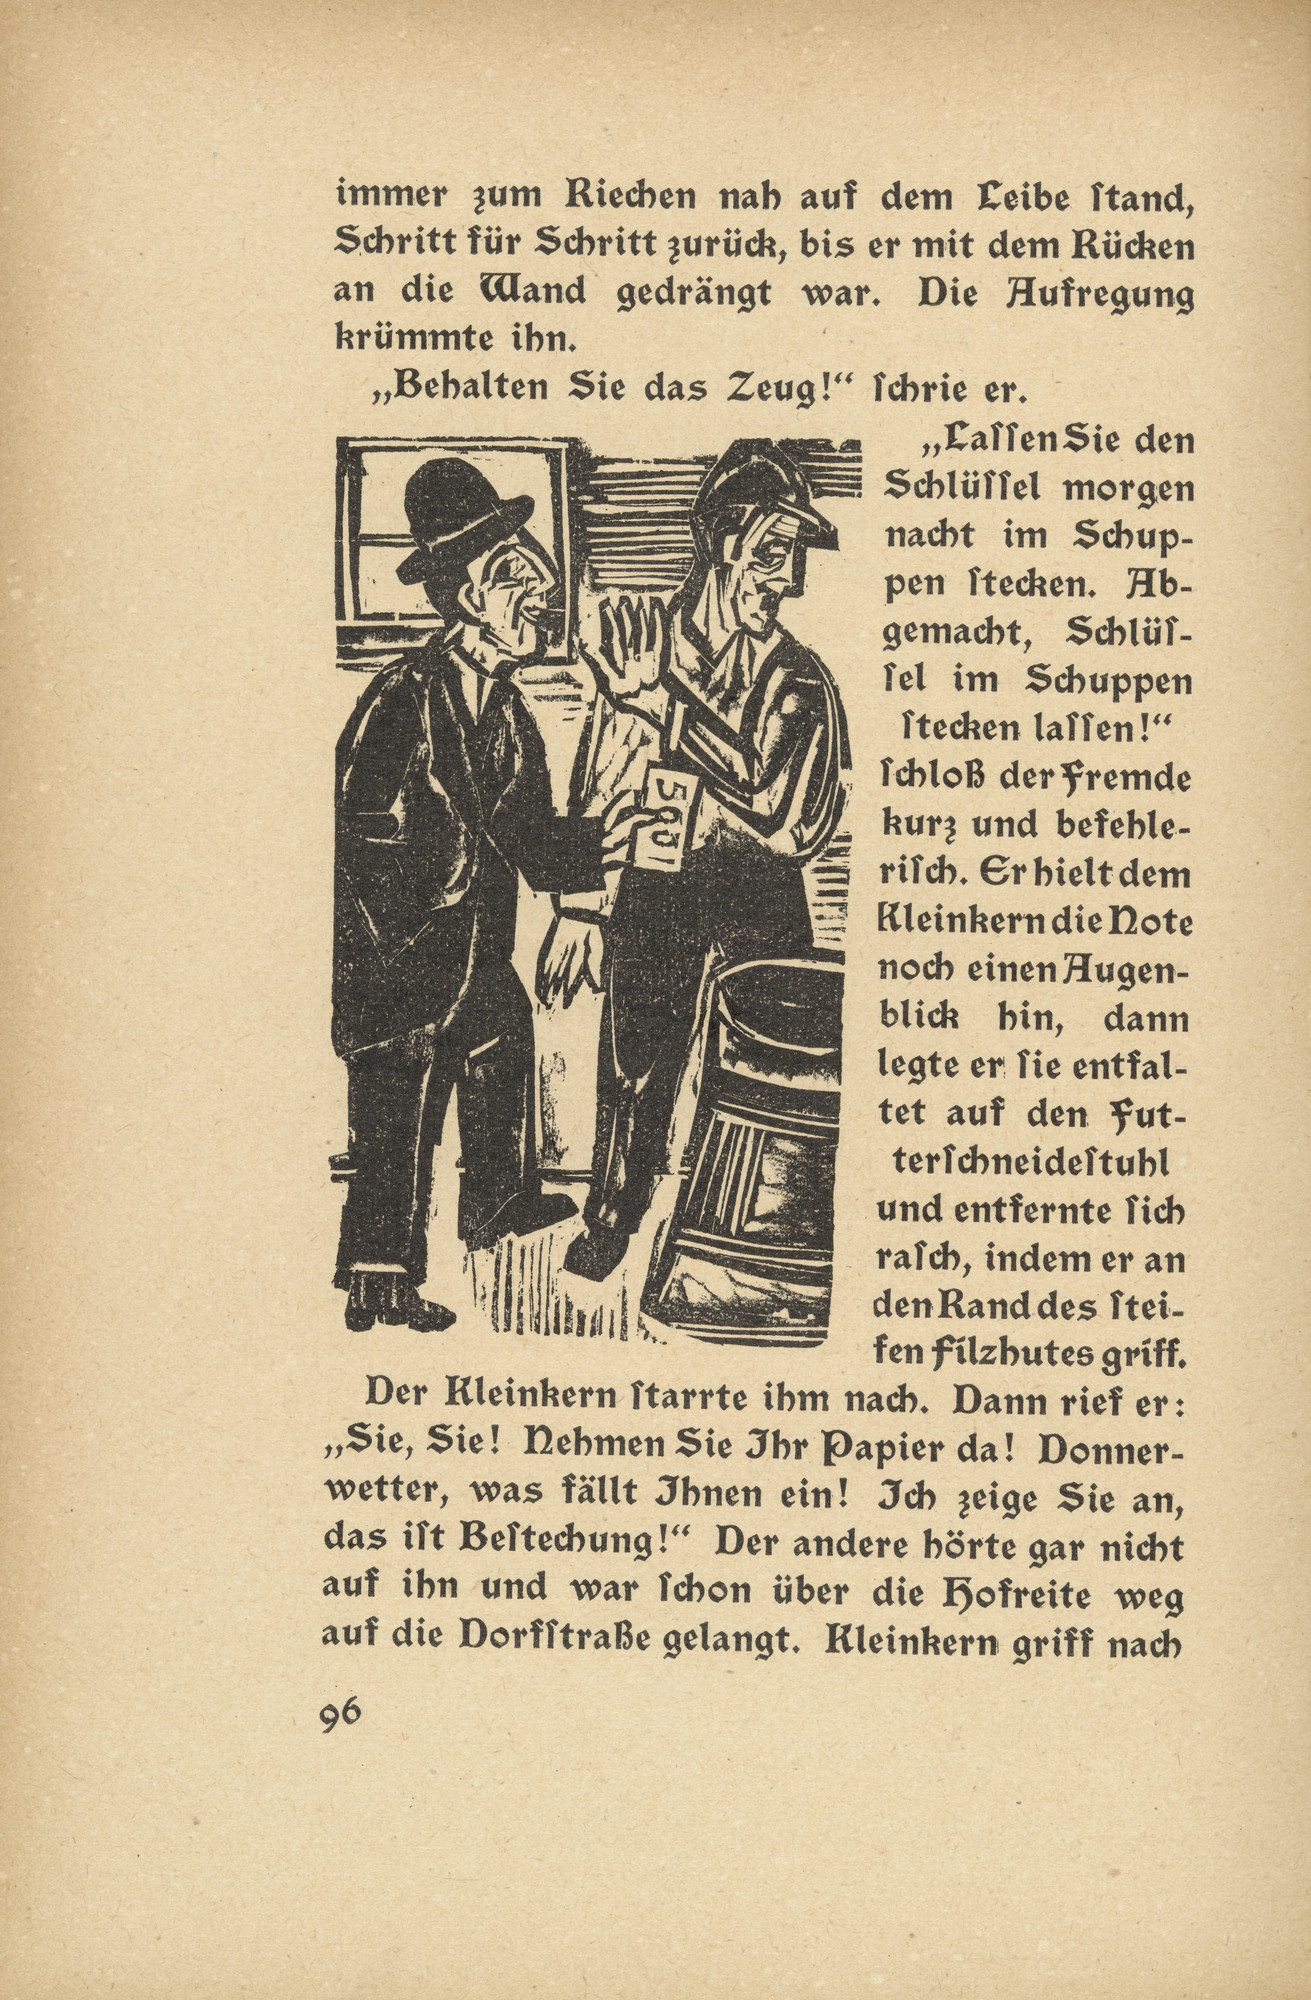 Ernst Ludwig Kirchner. Downfall: Kleinkern and the Stranger (Niedergang: Kleinkern und der Fremde) (in-text plate, page 96) from Neben der Heerstrasse (Off the Main Road). 1923